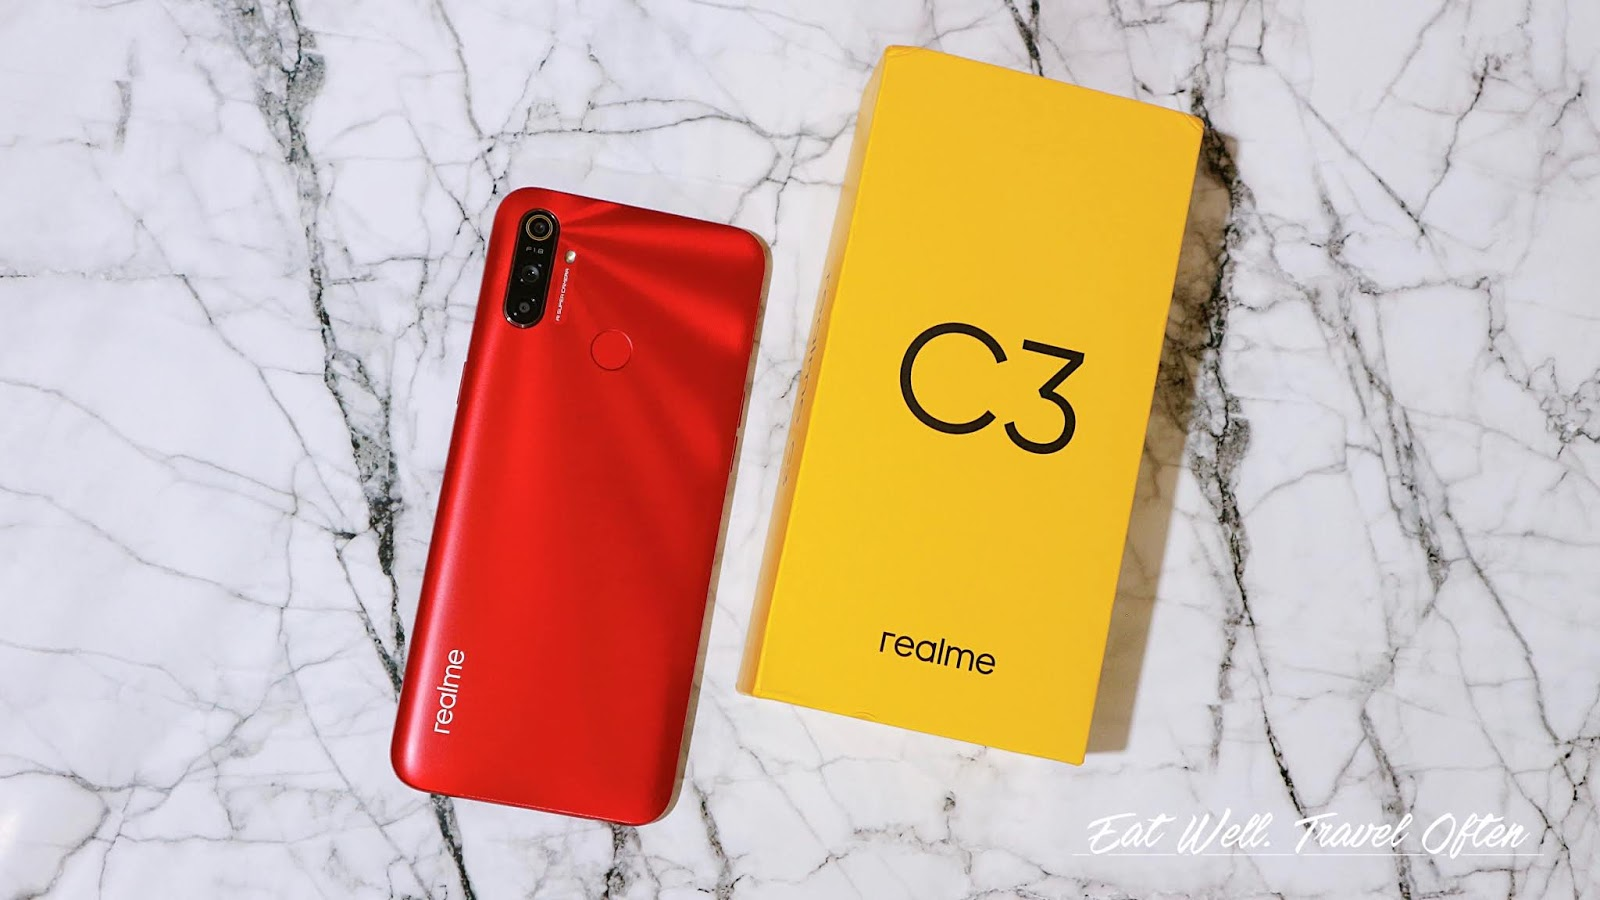 realme c3 philippines review jexxhinggo.com